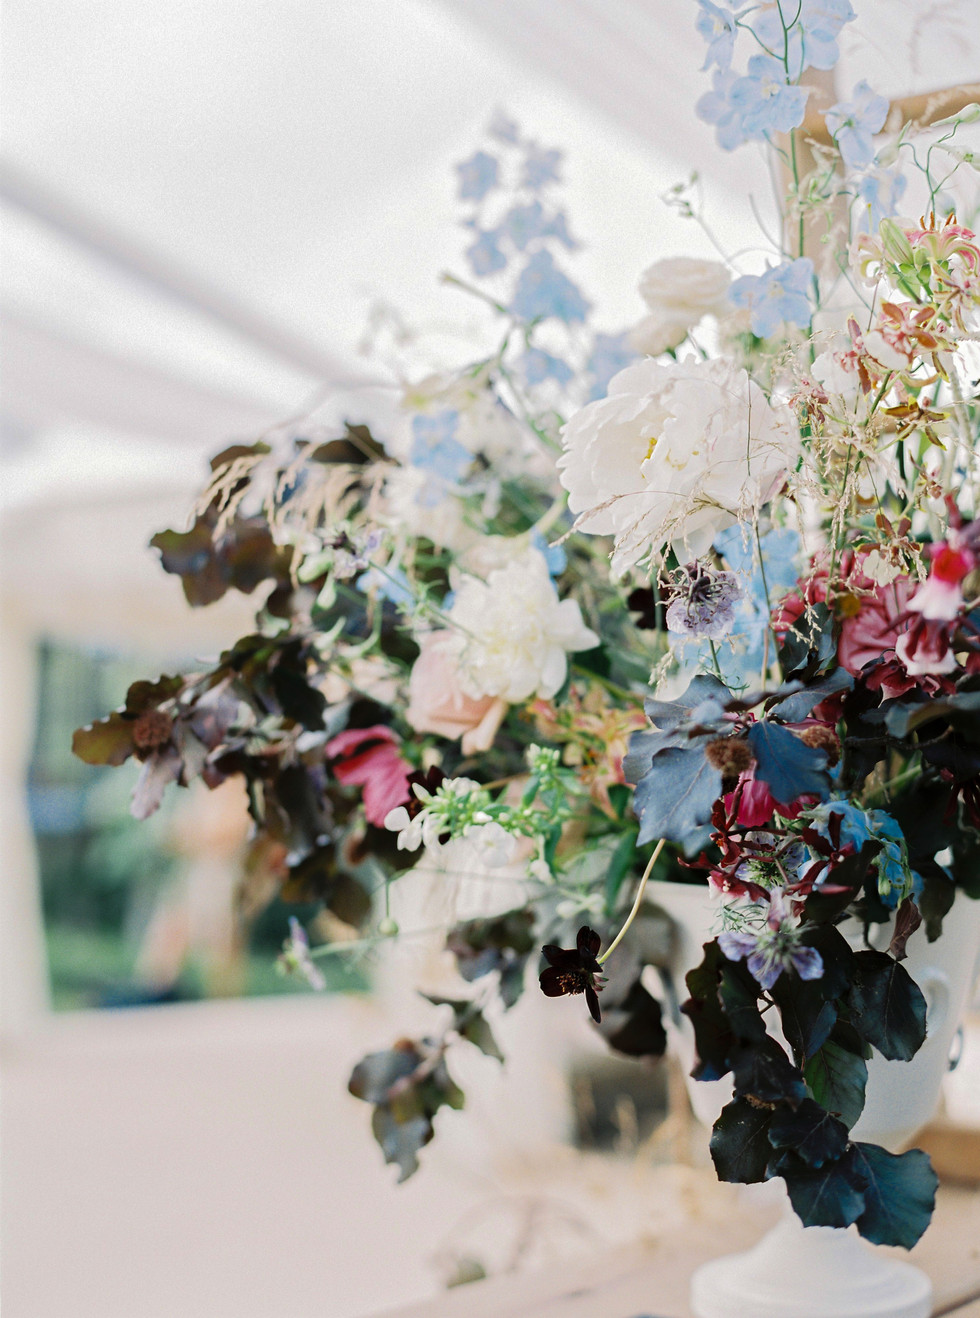 SUSTAINABLE FLORISTRY COMMITMENT